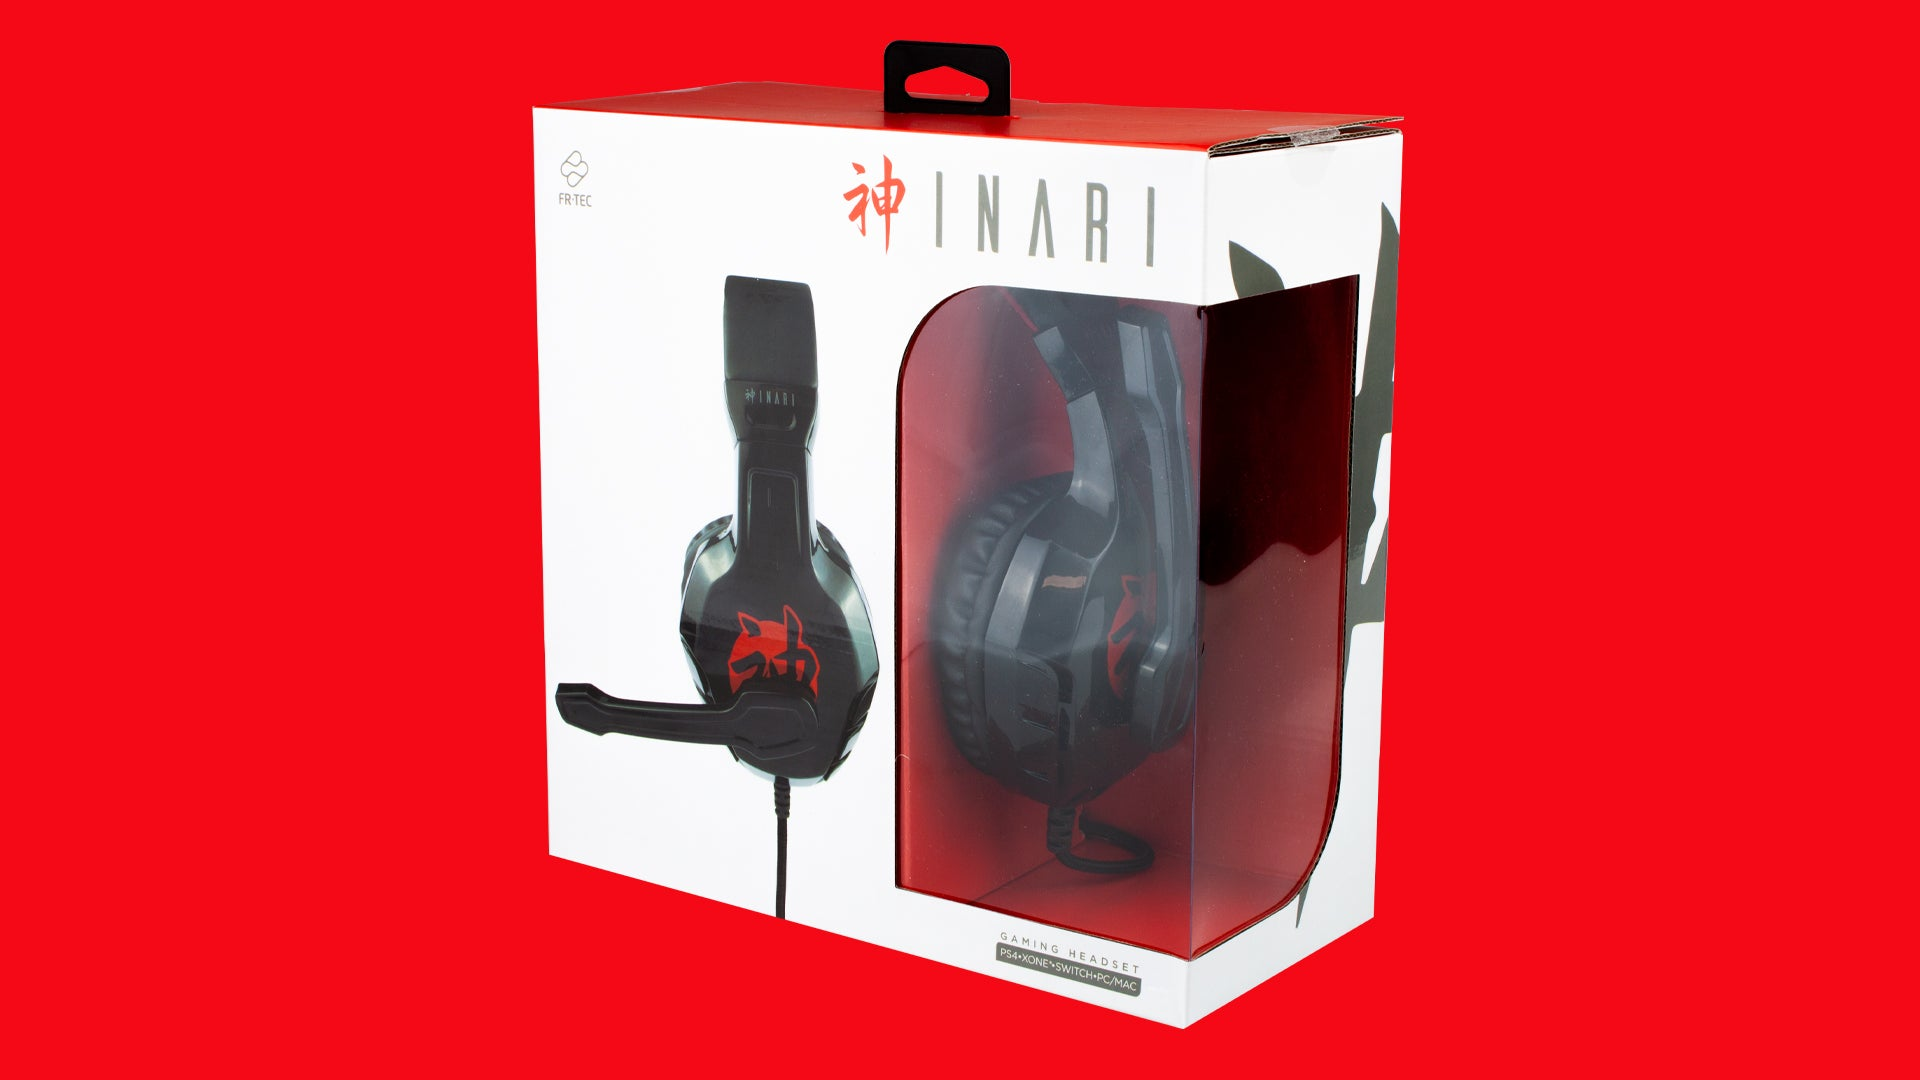 INARI Gaming Headset by Blade